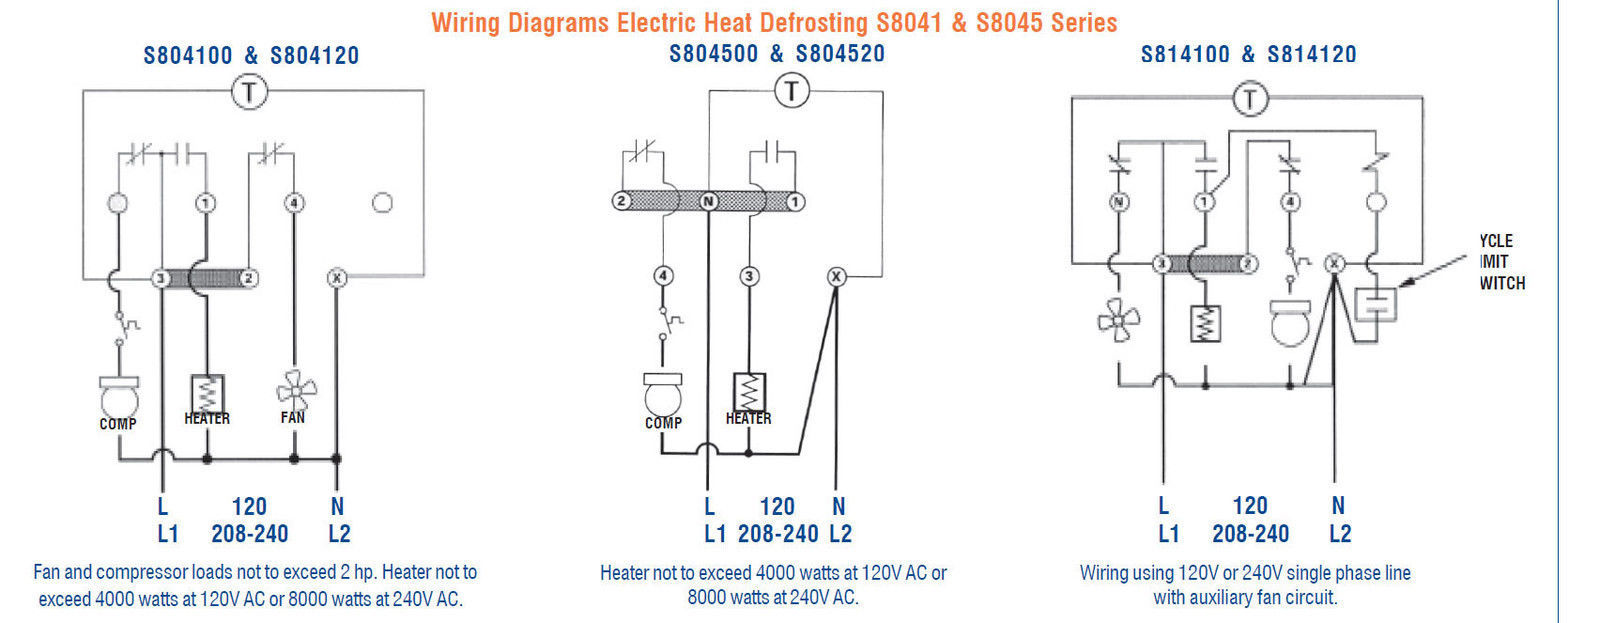 REPLACEMENT FOR PARAGON 8041-20 ELECTRO-MECHANICAL TIMER